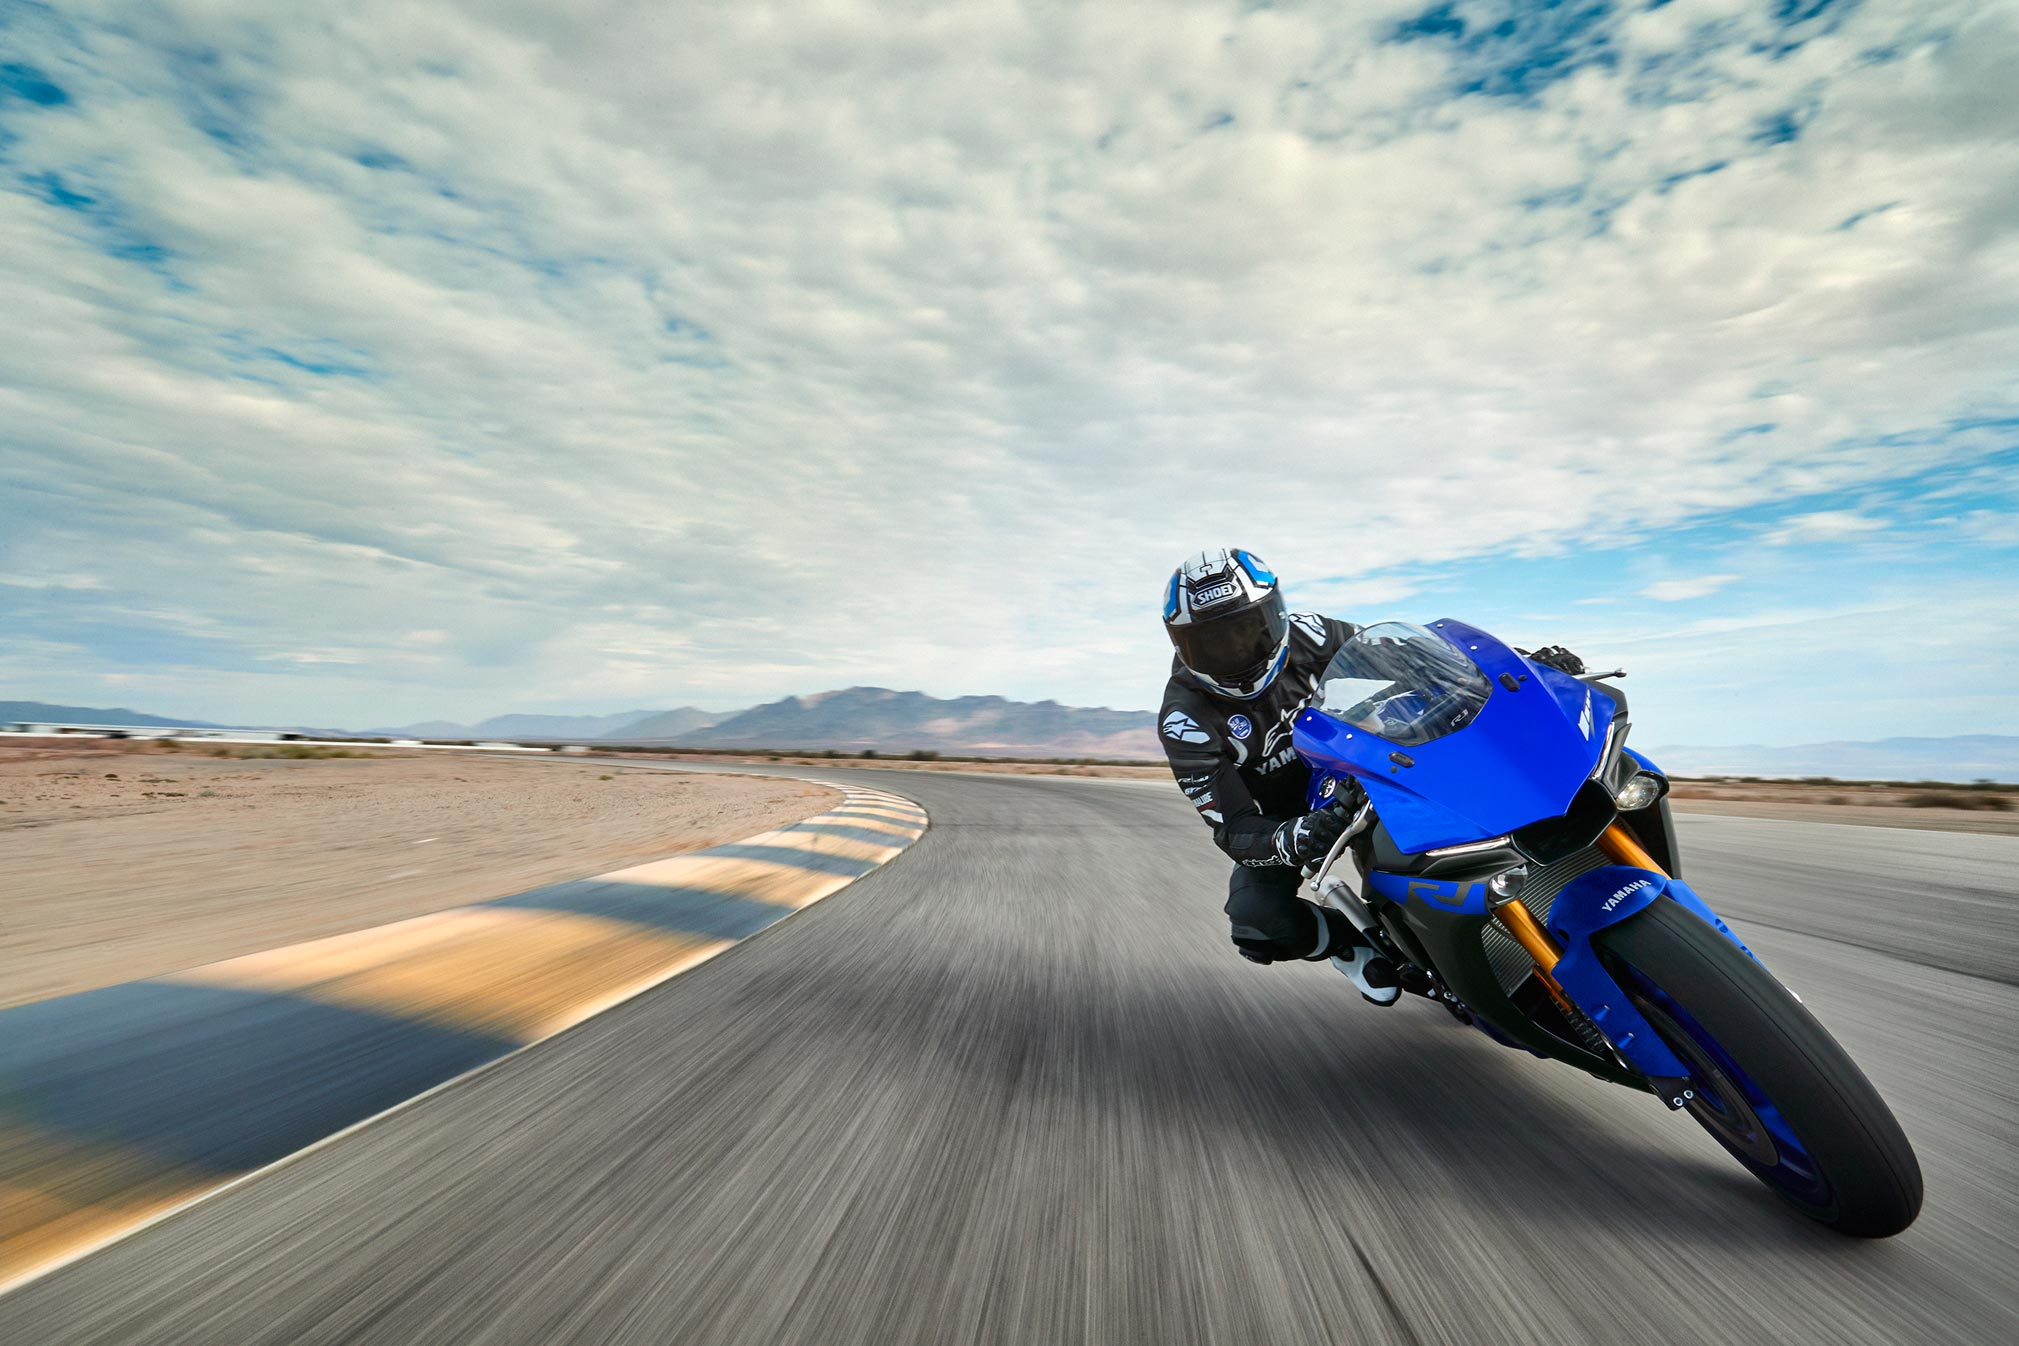 2019 Yamaha YZF-R1 Guide • Total Motorcycle